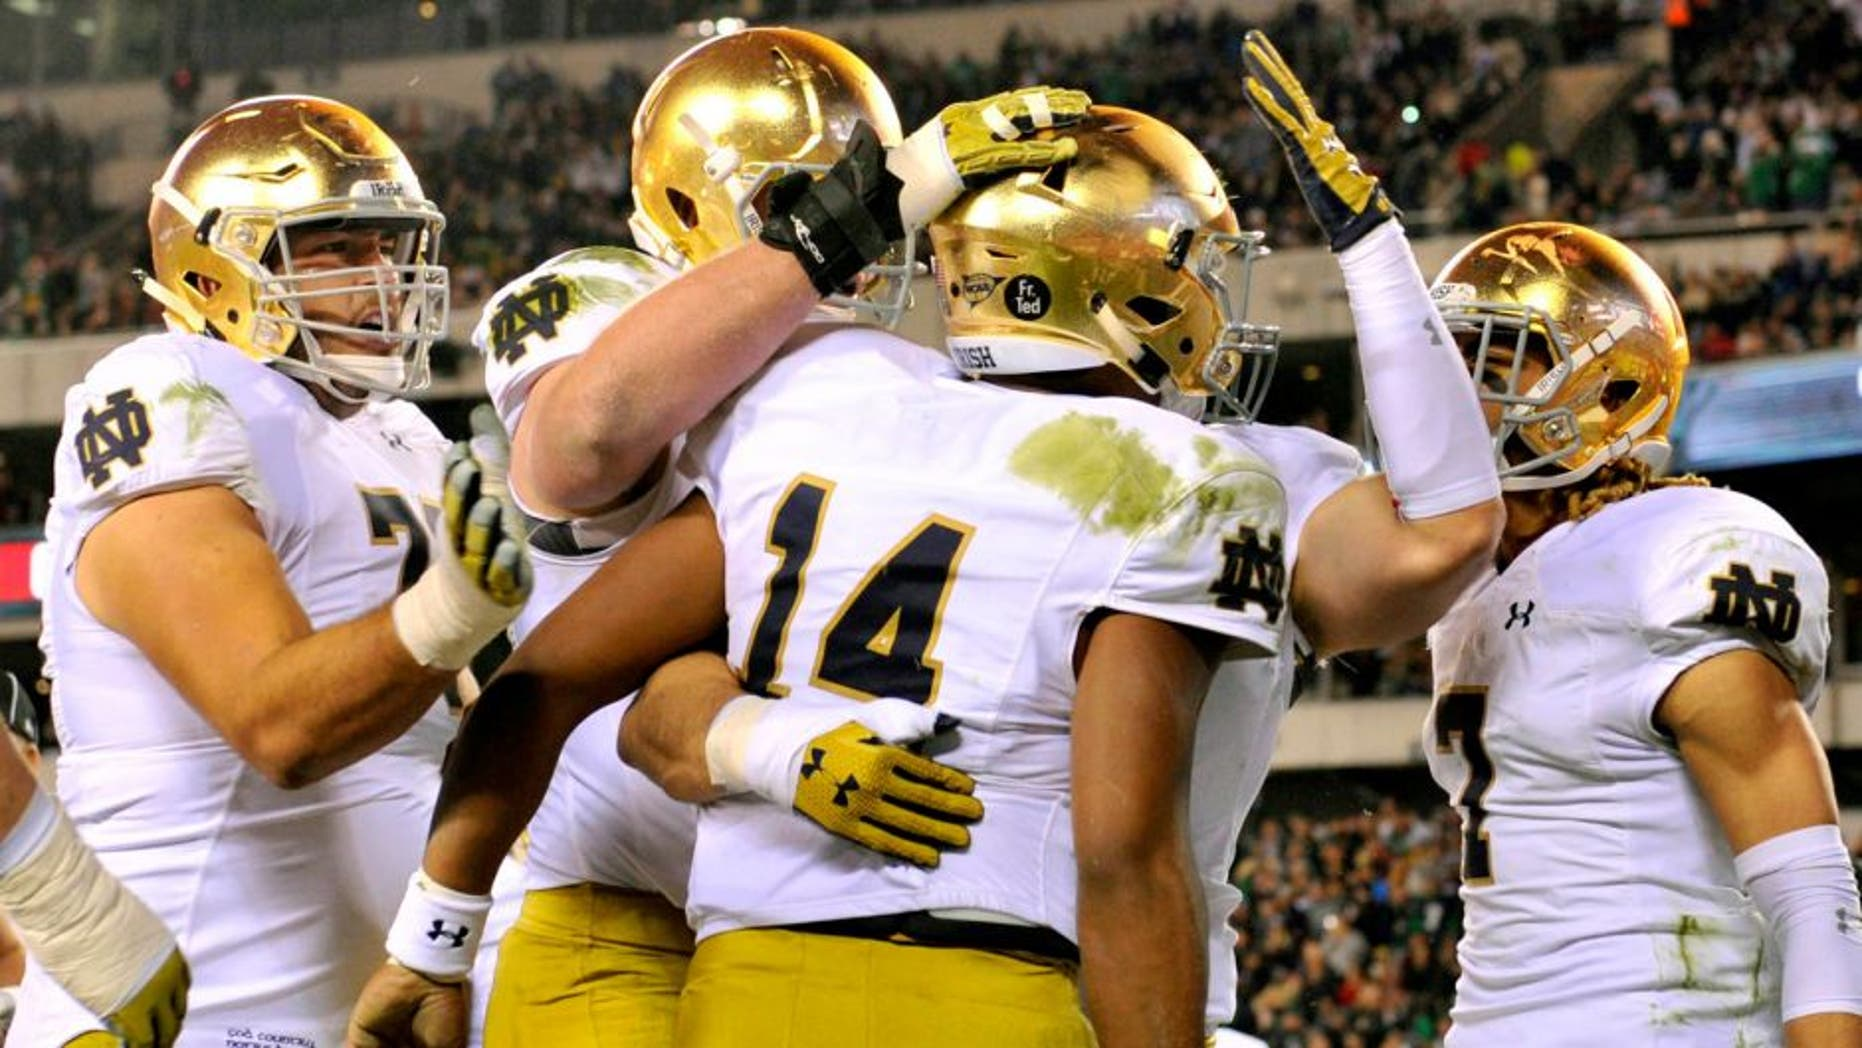 Oct 31, 2015; Philadelphia, PA, USA; Notre Dame Fighting Irish quarterback DeShone Kizer (14) celebrates with teammates after a touchdown against the Temple Owls during the first quarter at Lincoln Financial Field. Mandatory Credit: Derik Hamilton-USA TODAY Sports